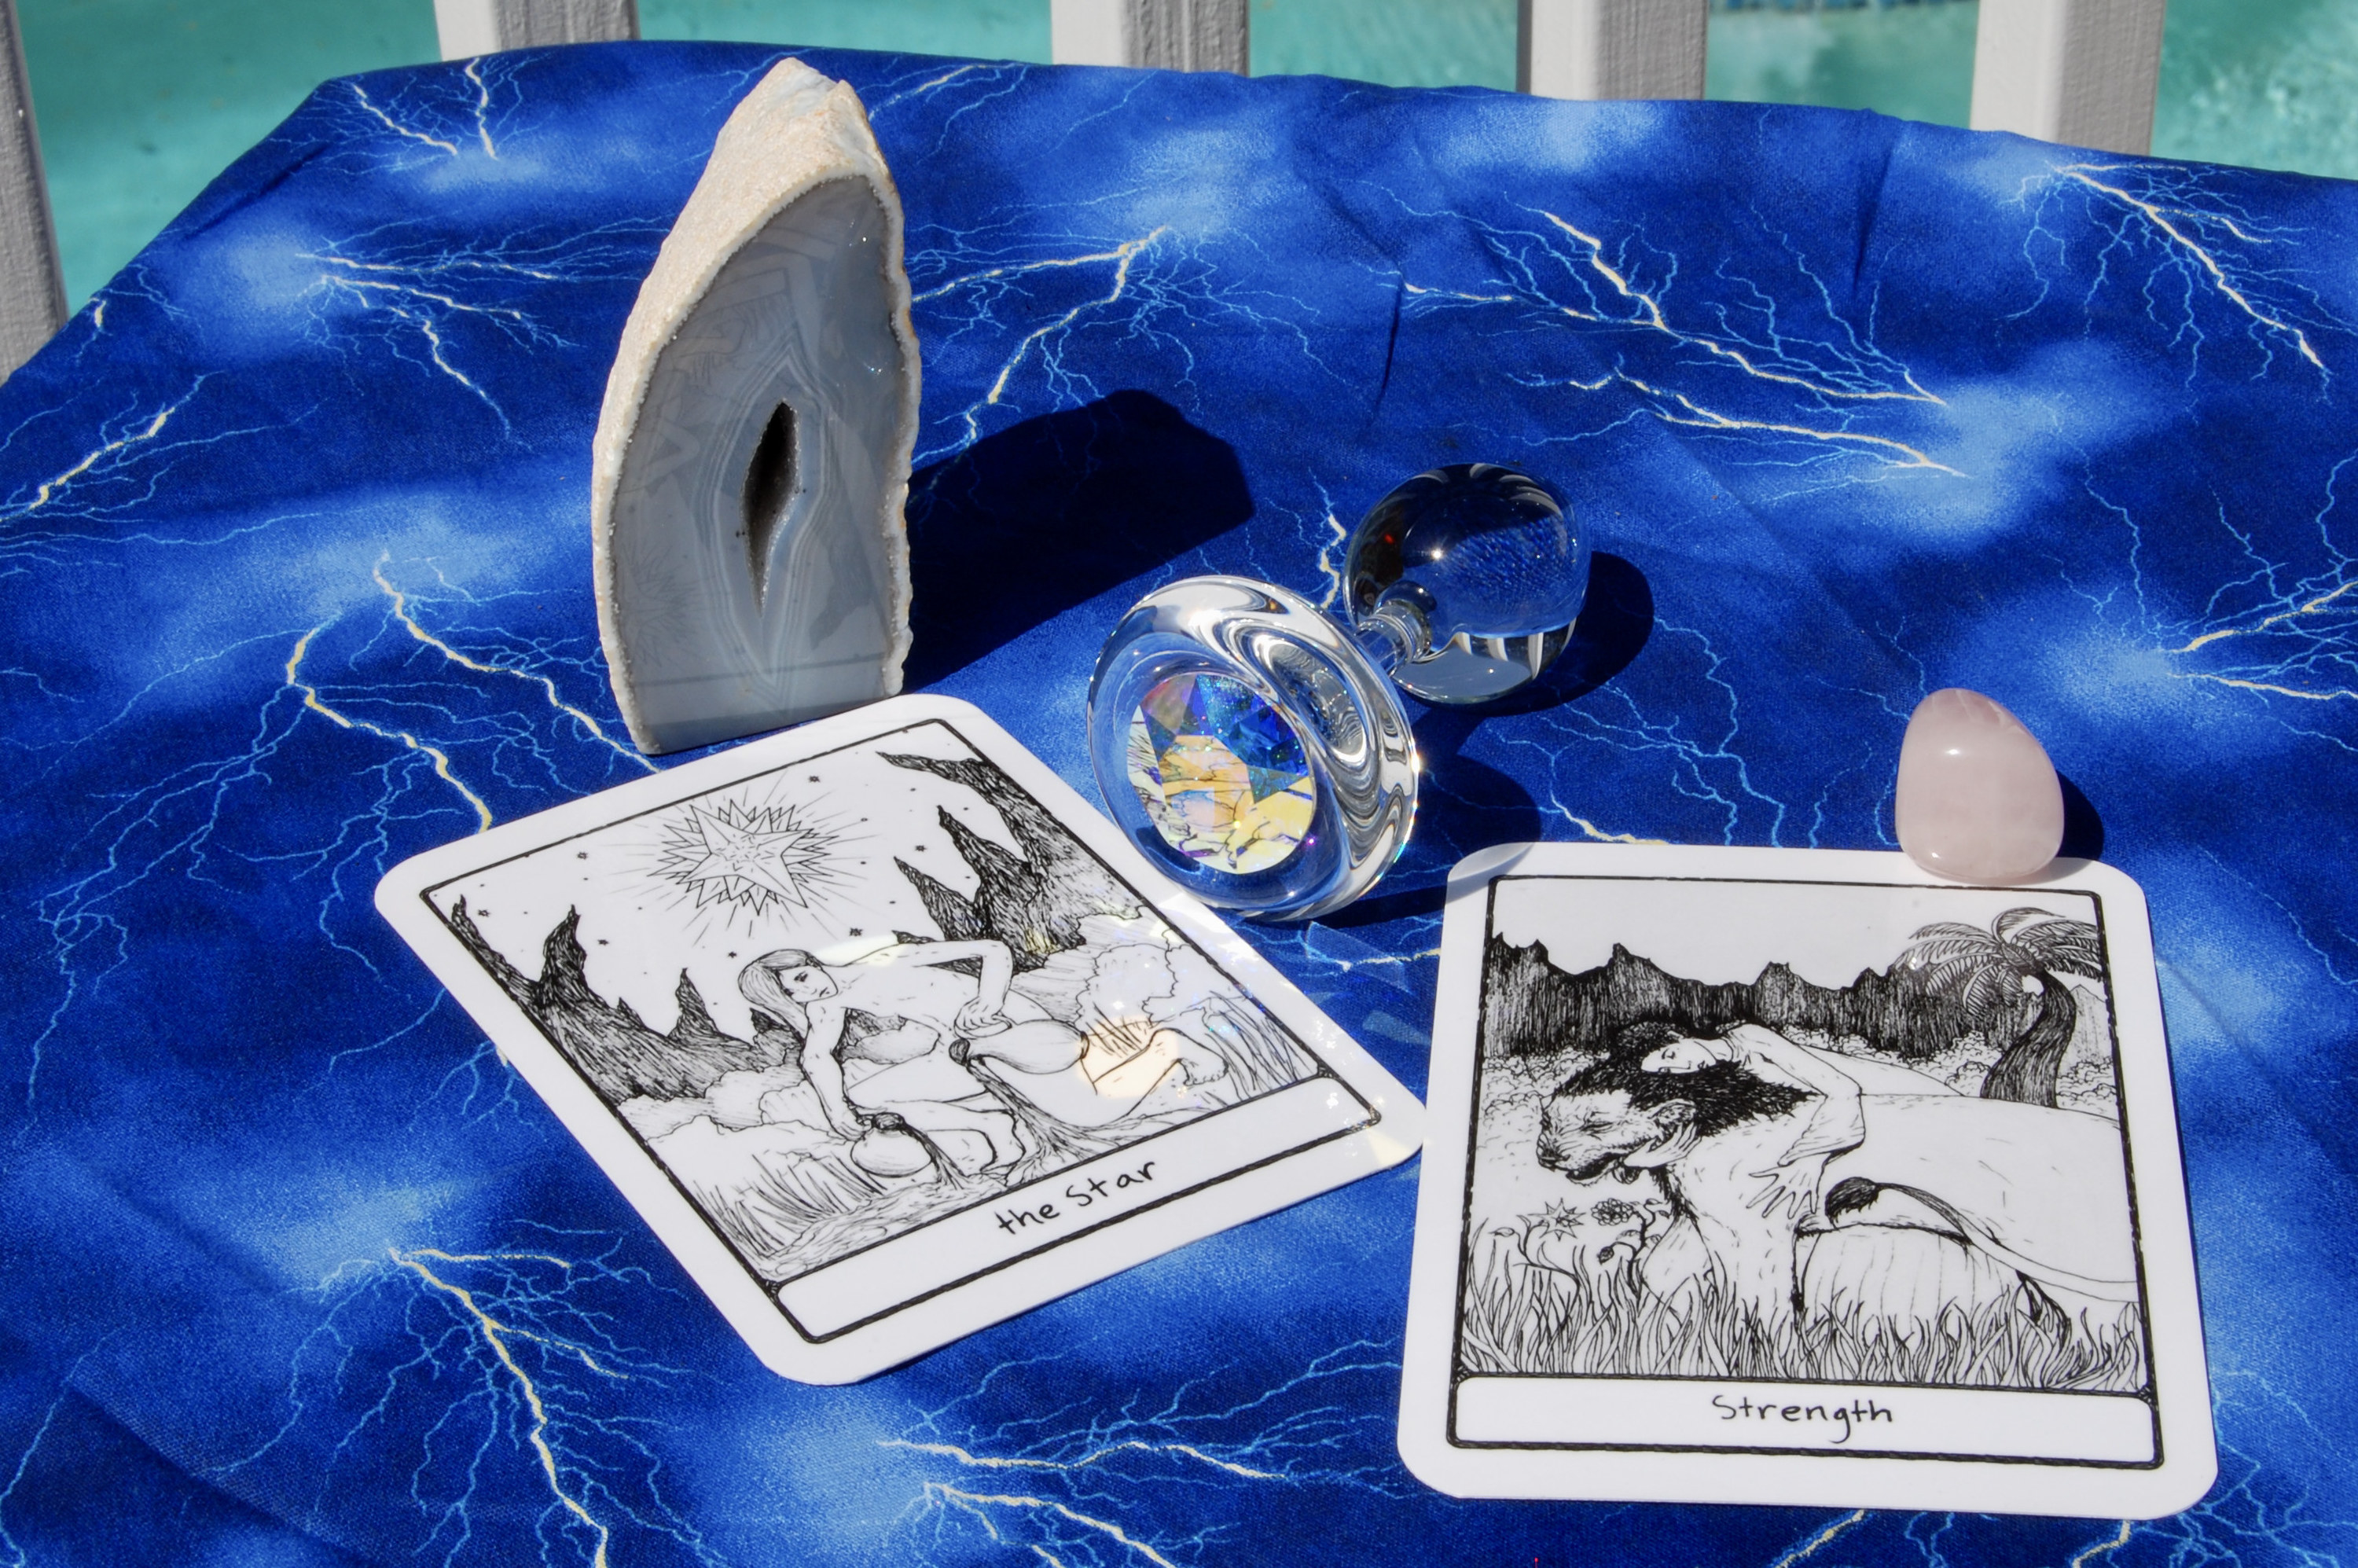 Photo of a Crystal Delights anal plug with two tarot cards (the Star and Strength), plus a geode and a small crystal